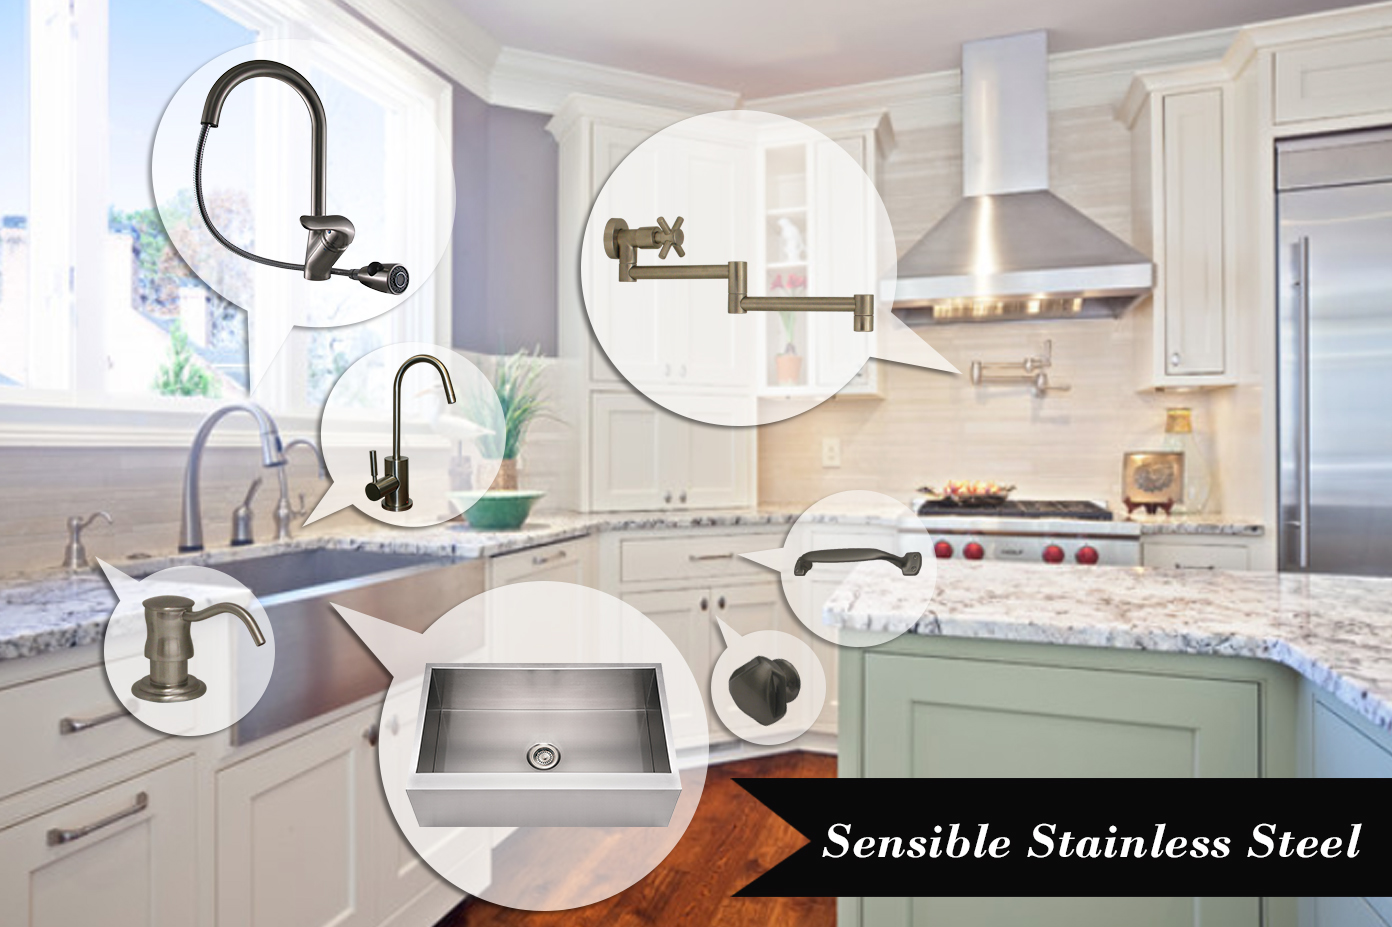 Sensible Stainless Steel | Kitchen Bath Trends